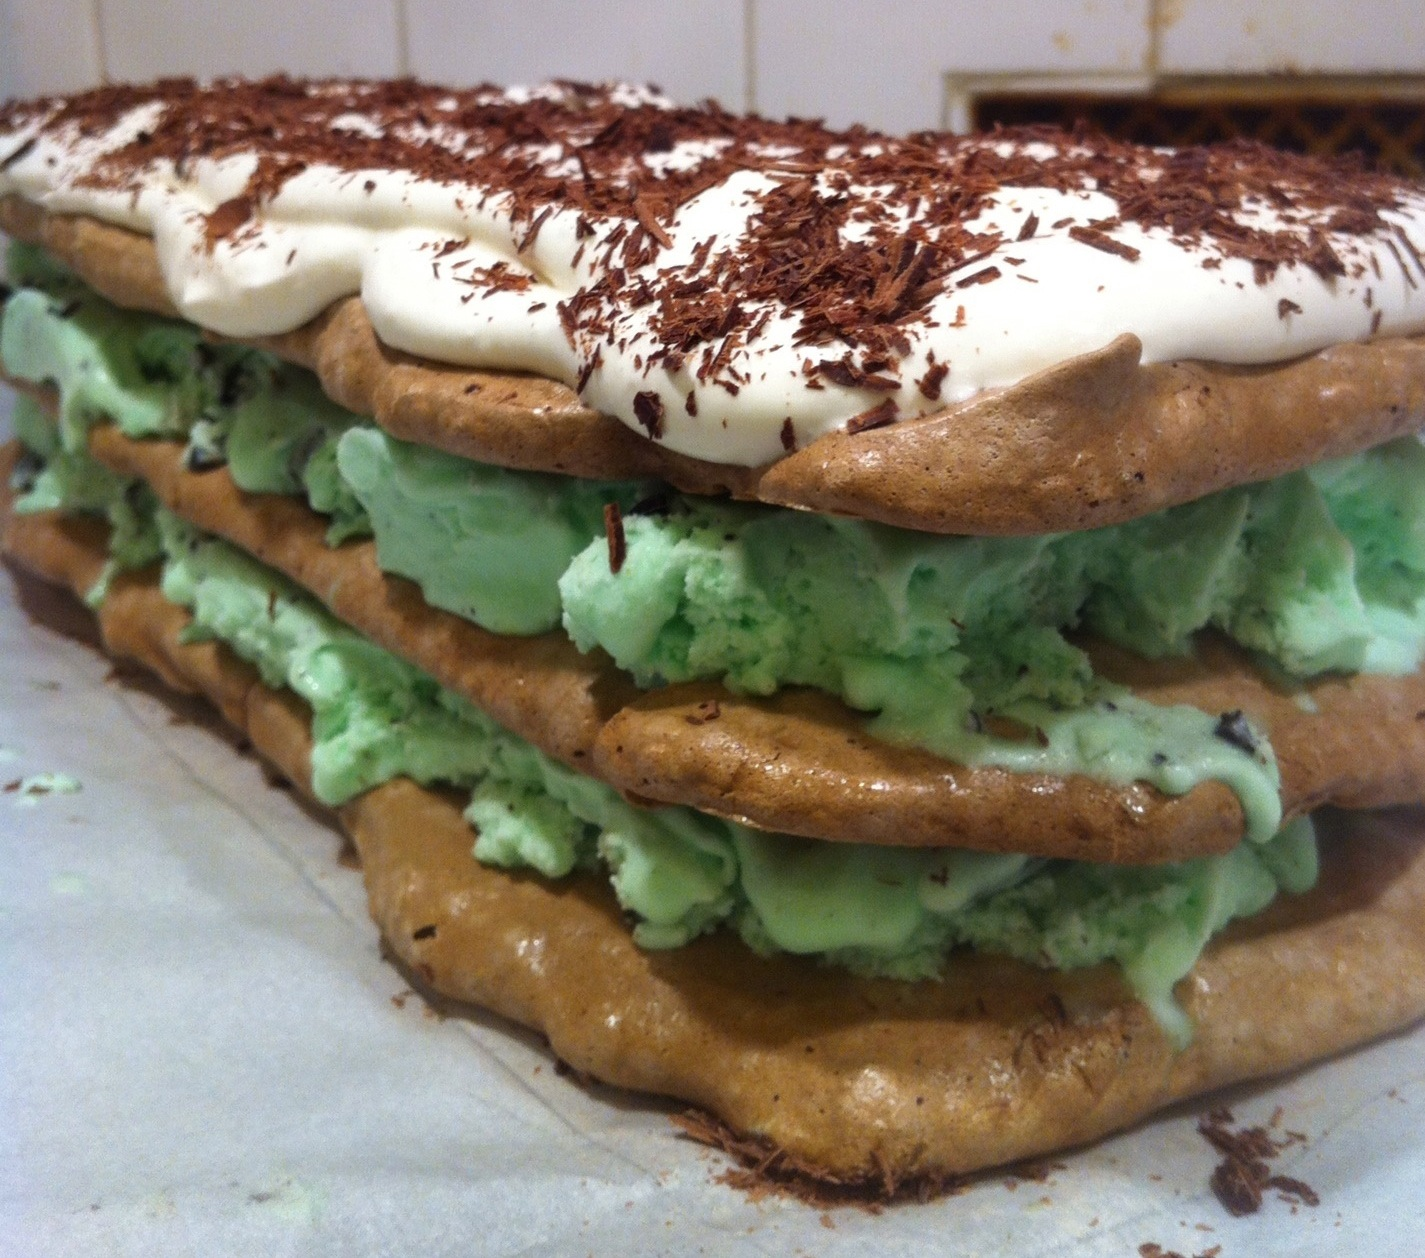 SugarScape: Chocolate Meringue Mint Chip Ice Cream Cake